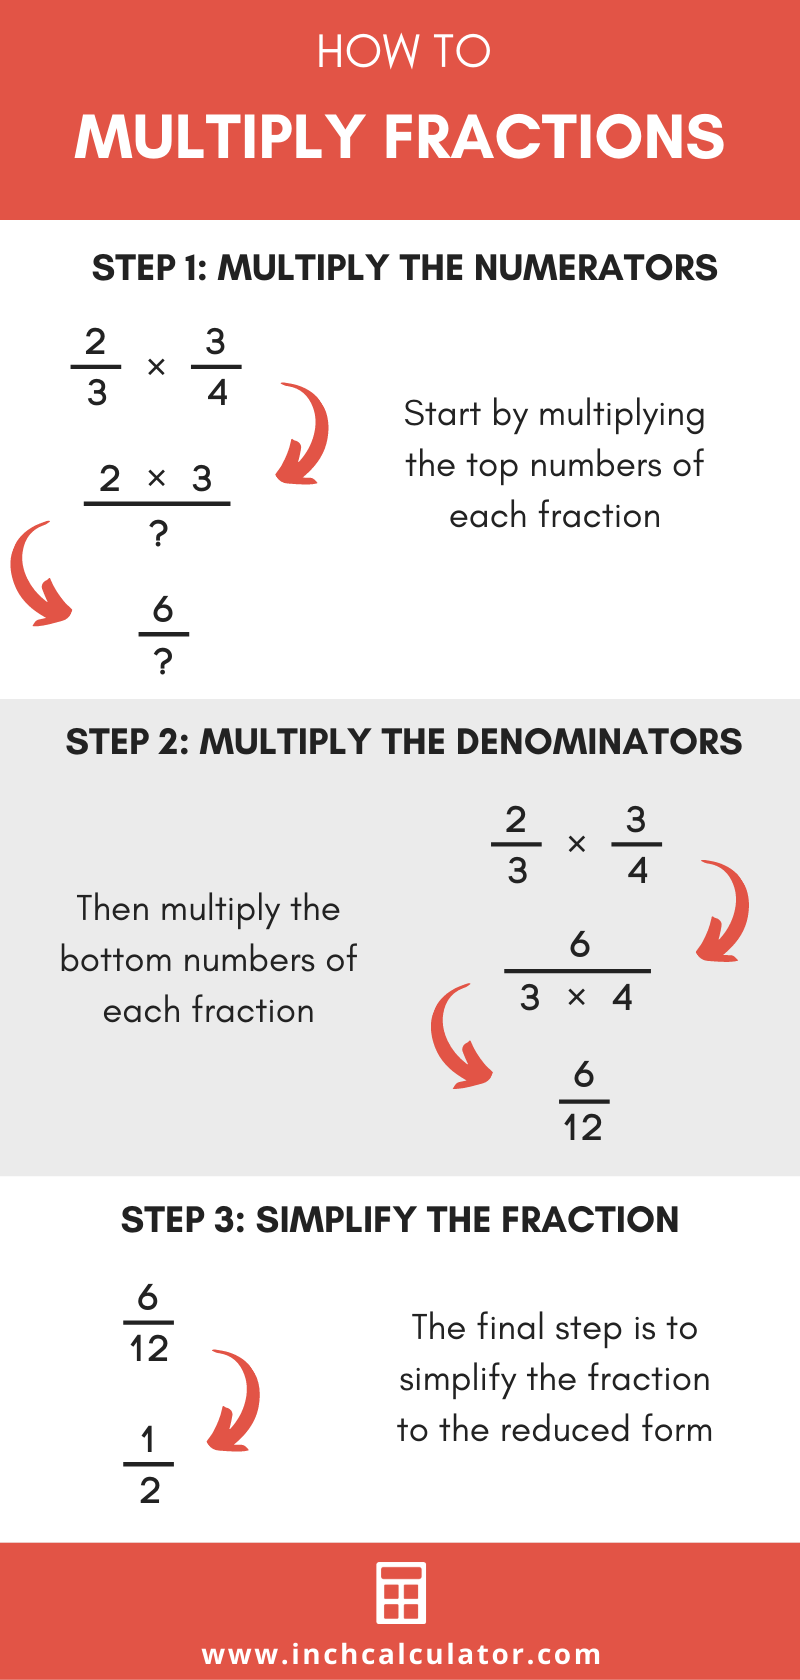 Fraction Calculator Ultimate Tool To Add Fractions Inch Calculator Math Fractions Worksheets Studying Math Math Fractions [ 1680 x 800 Pixel ]